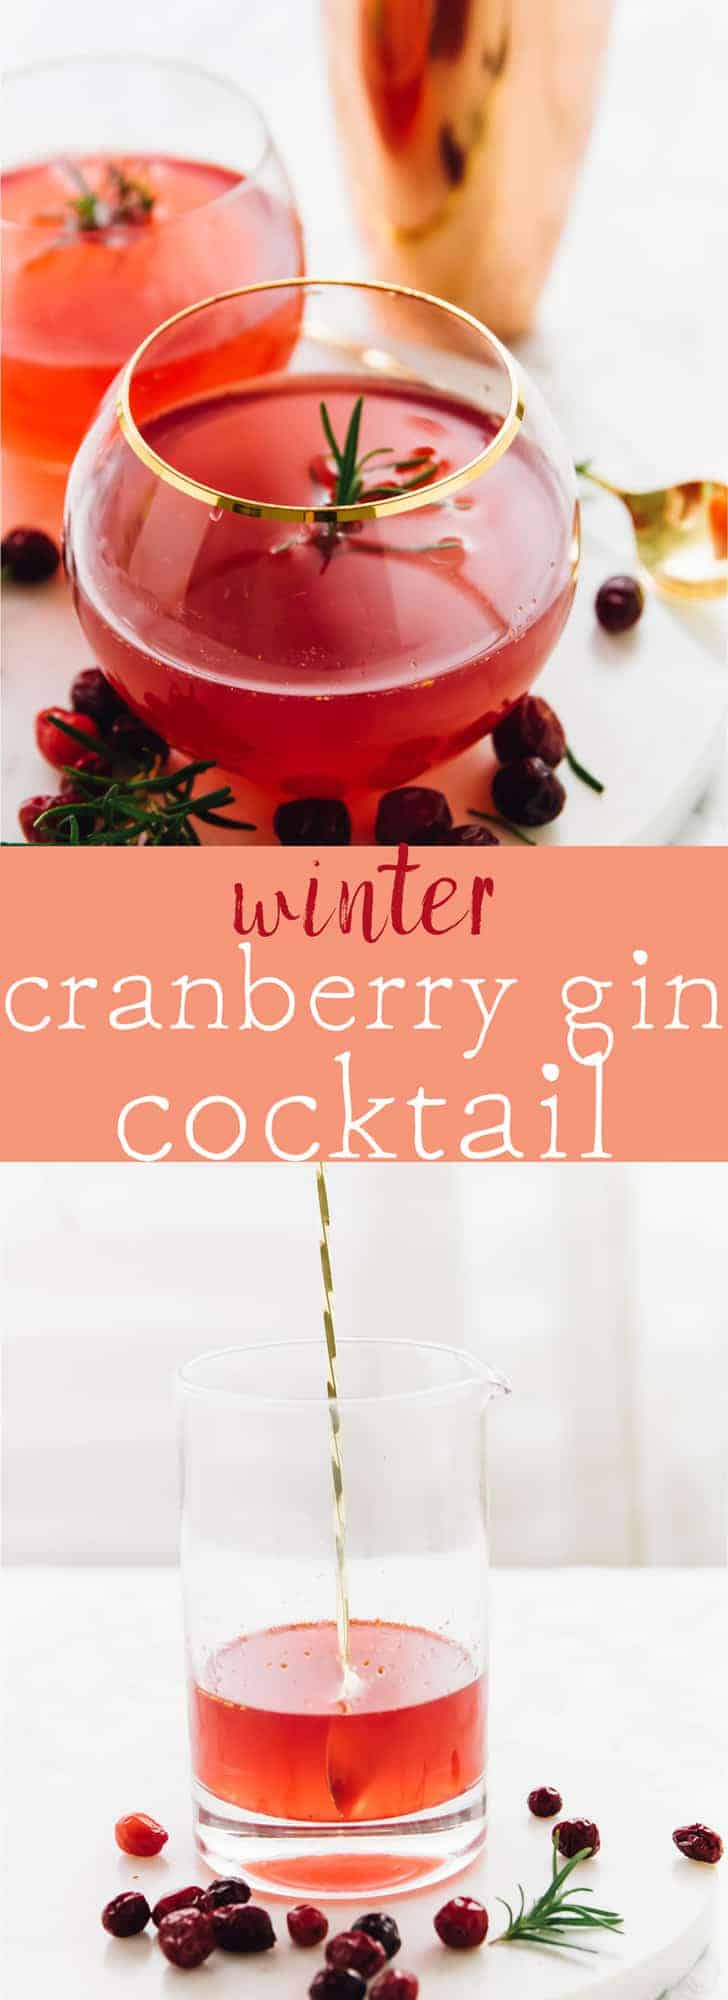 This Winter Cranberry Gin Cocktail will impress all of your guests! It's made with an easy rosemary infused simple syrup and only a few ingredients! via https://jessicainthekitchen.com